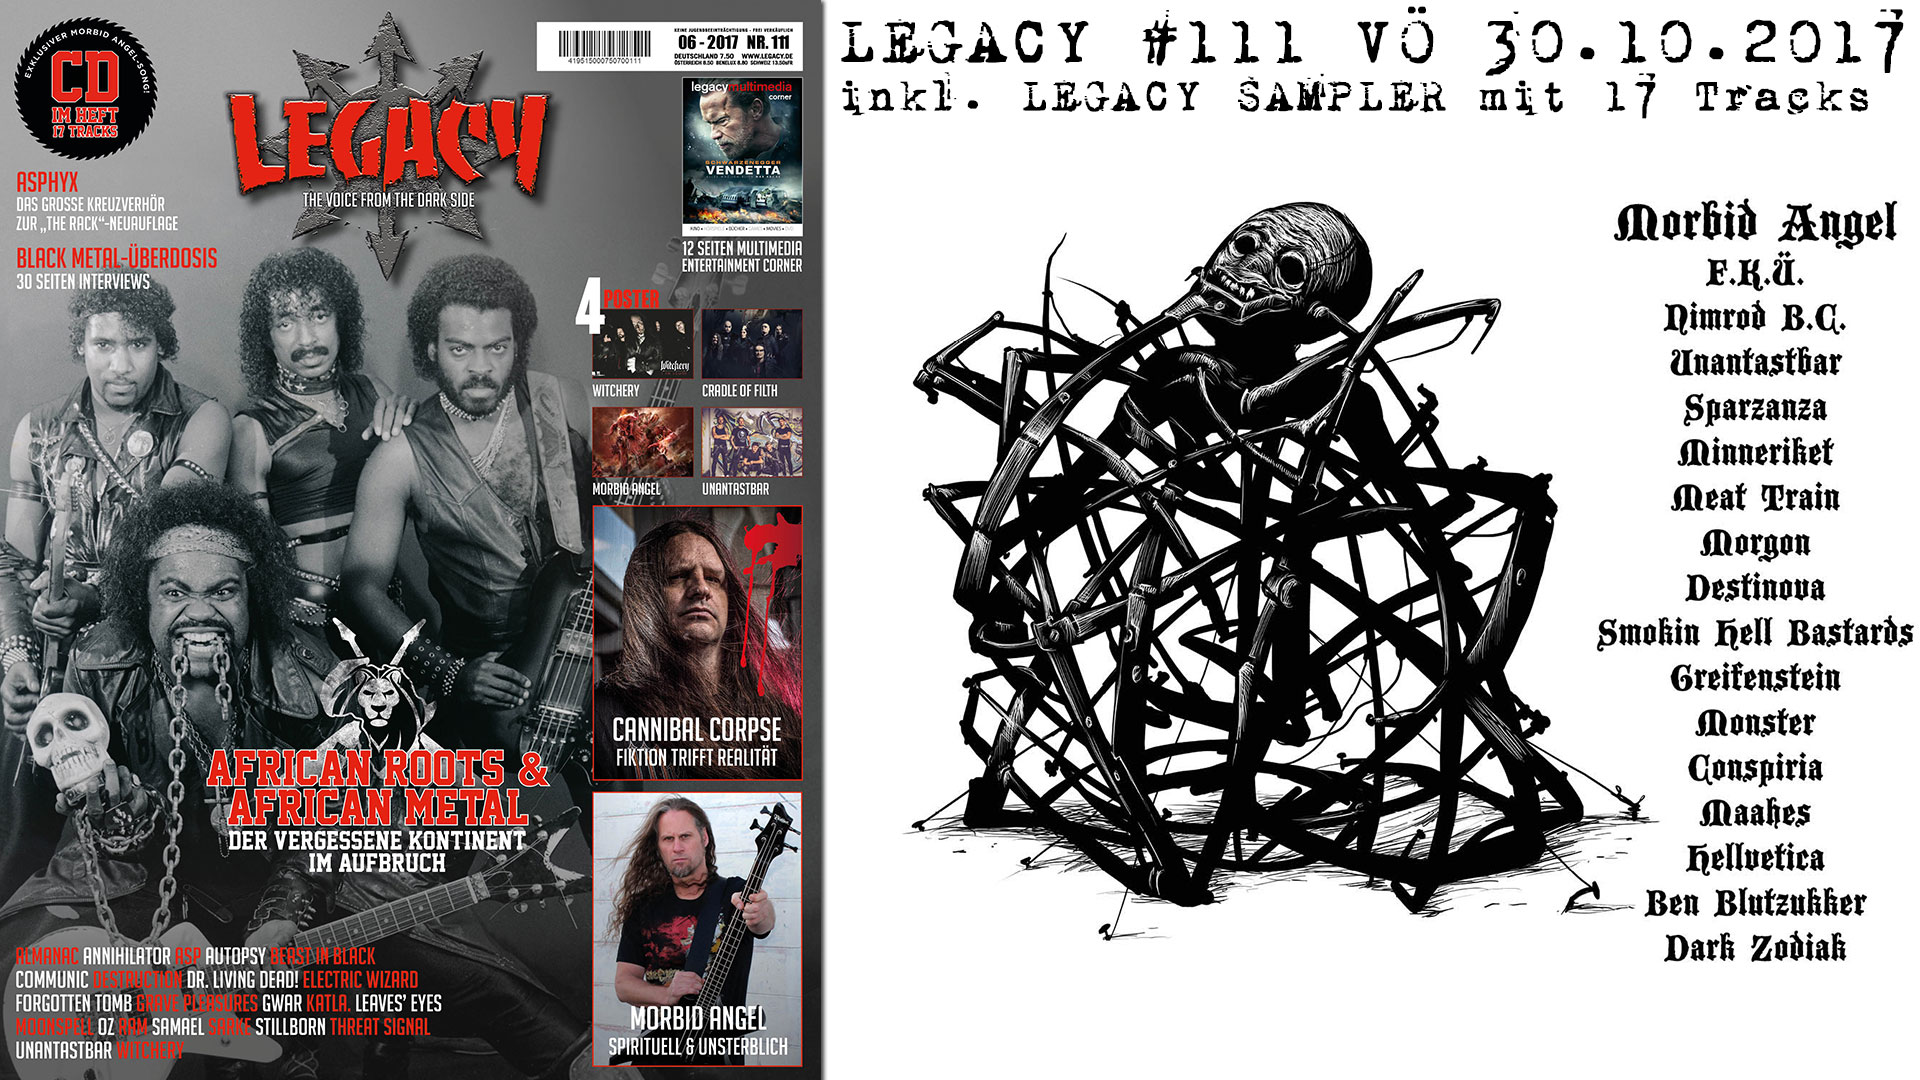 LEGACY #111 OUT 30.10.2017!